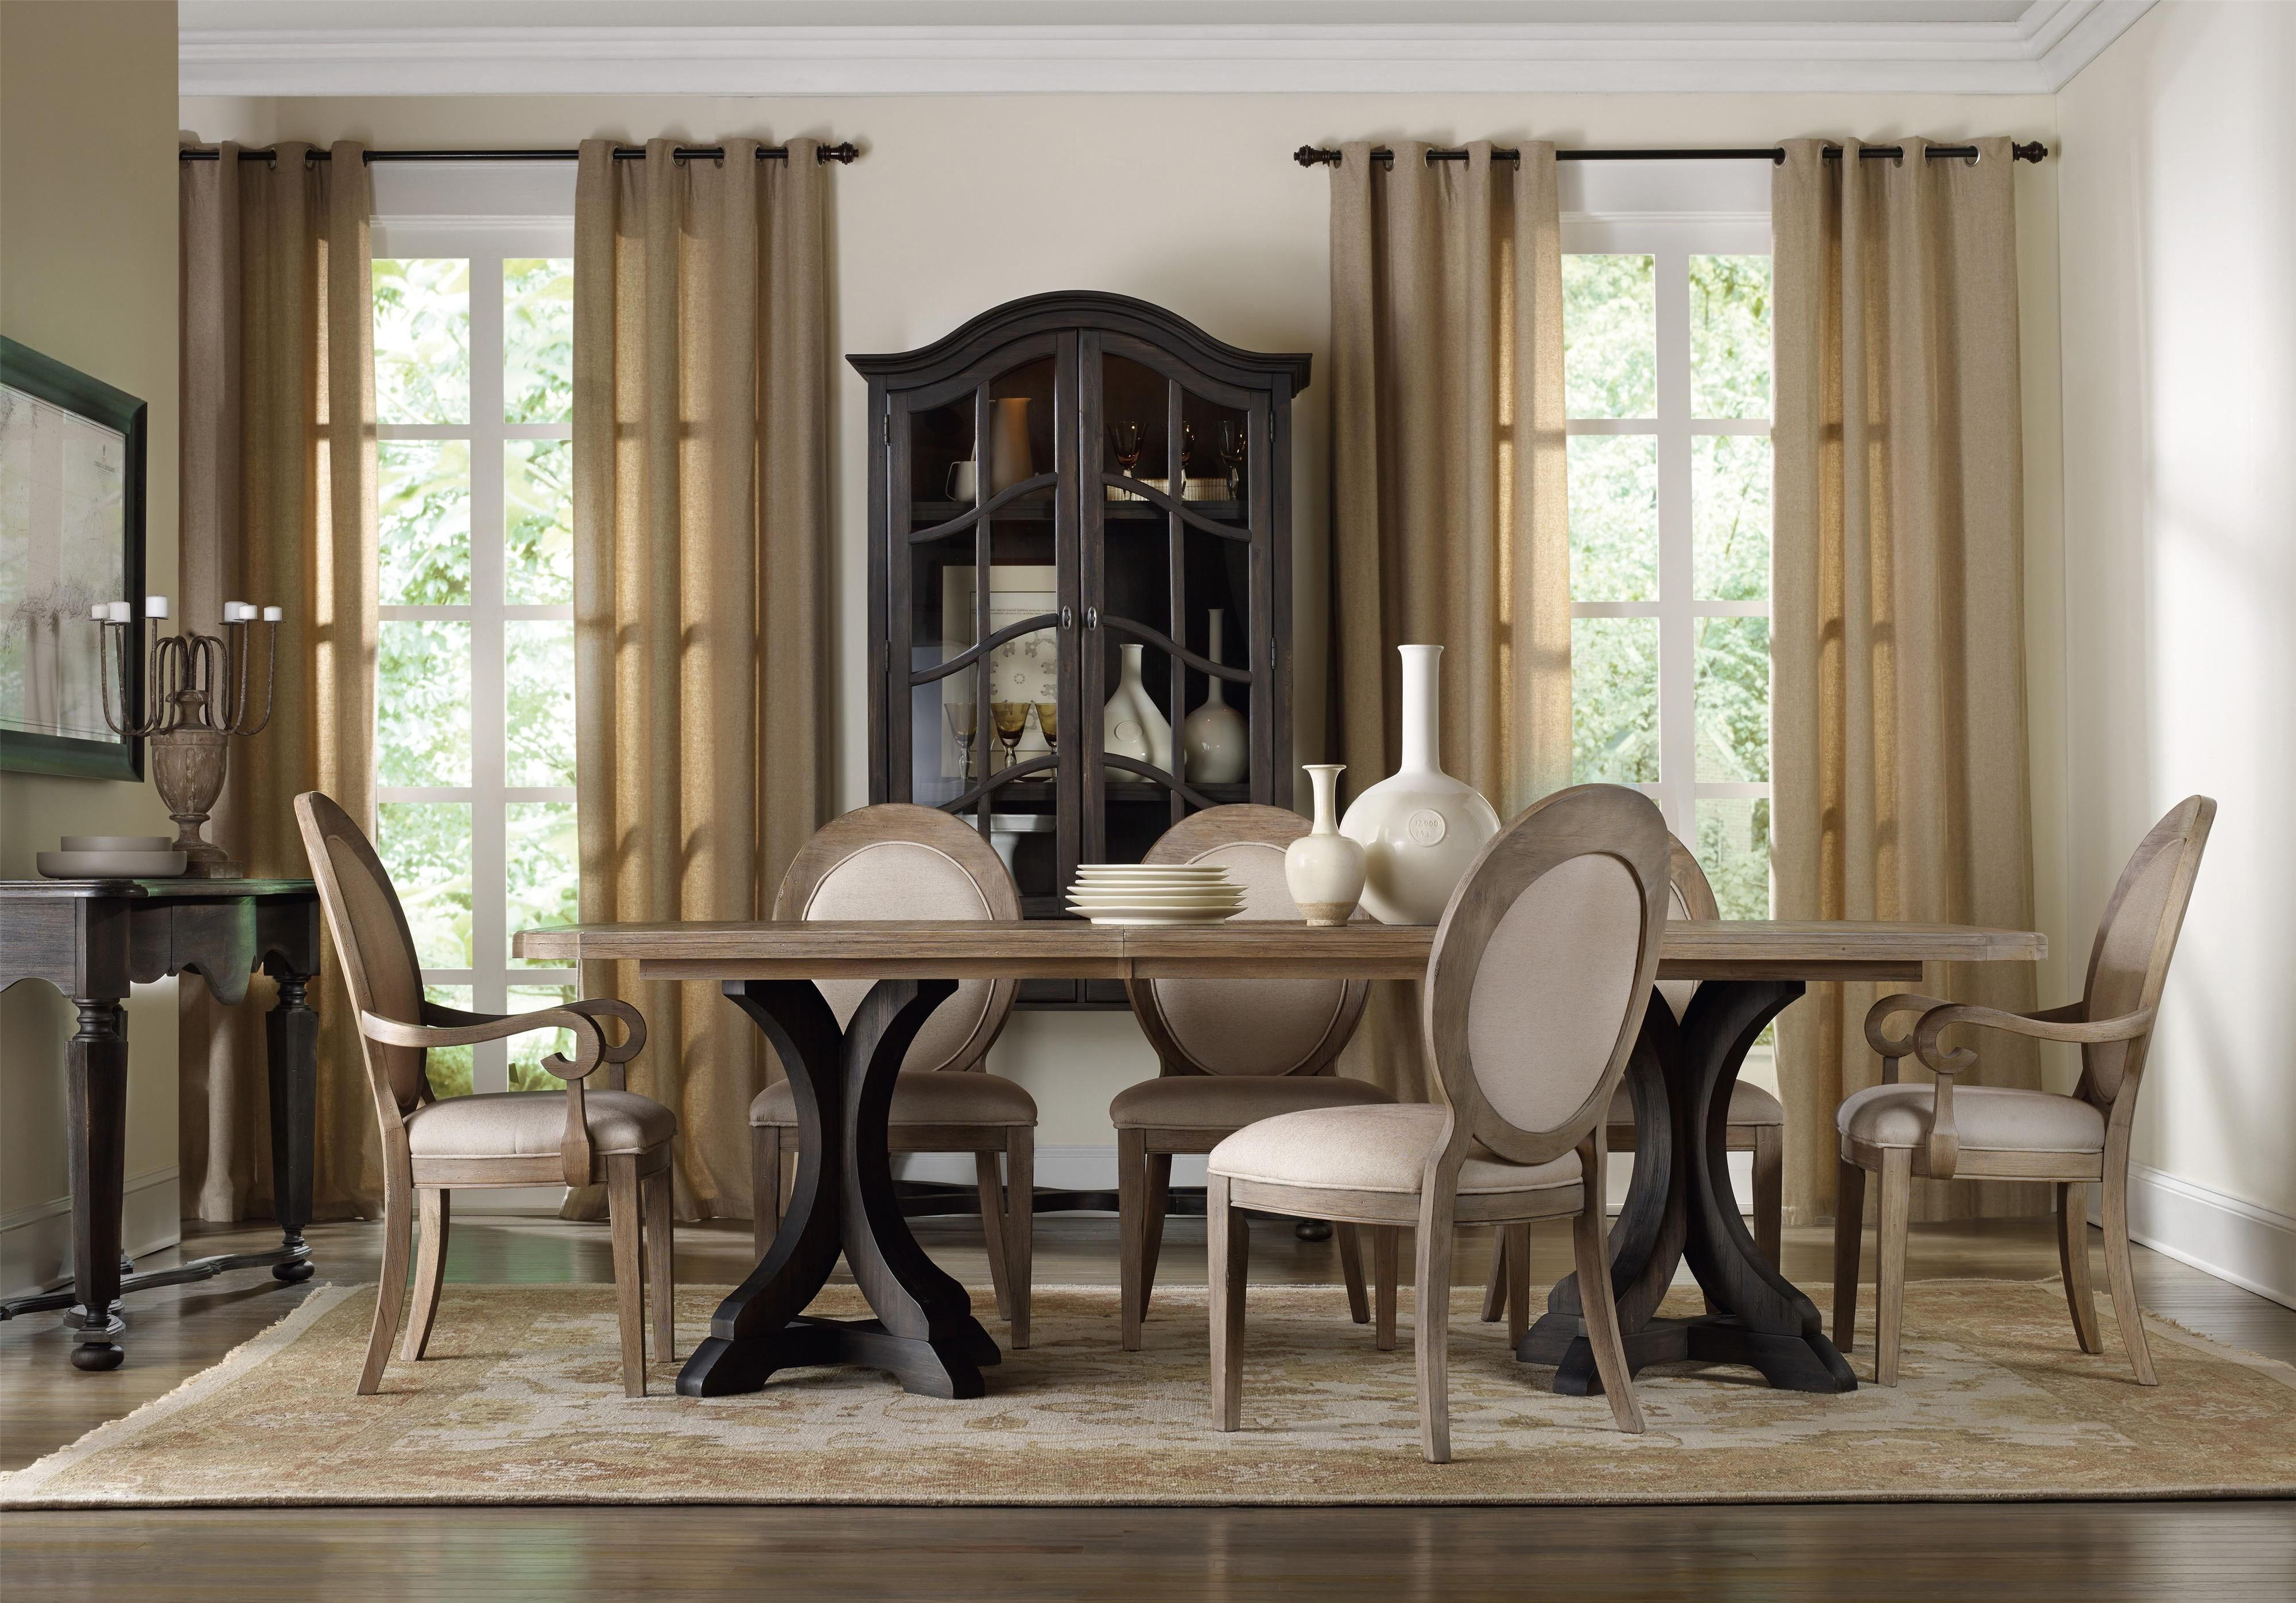 Pin On Beautiful Dining Room Tables And Chairs